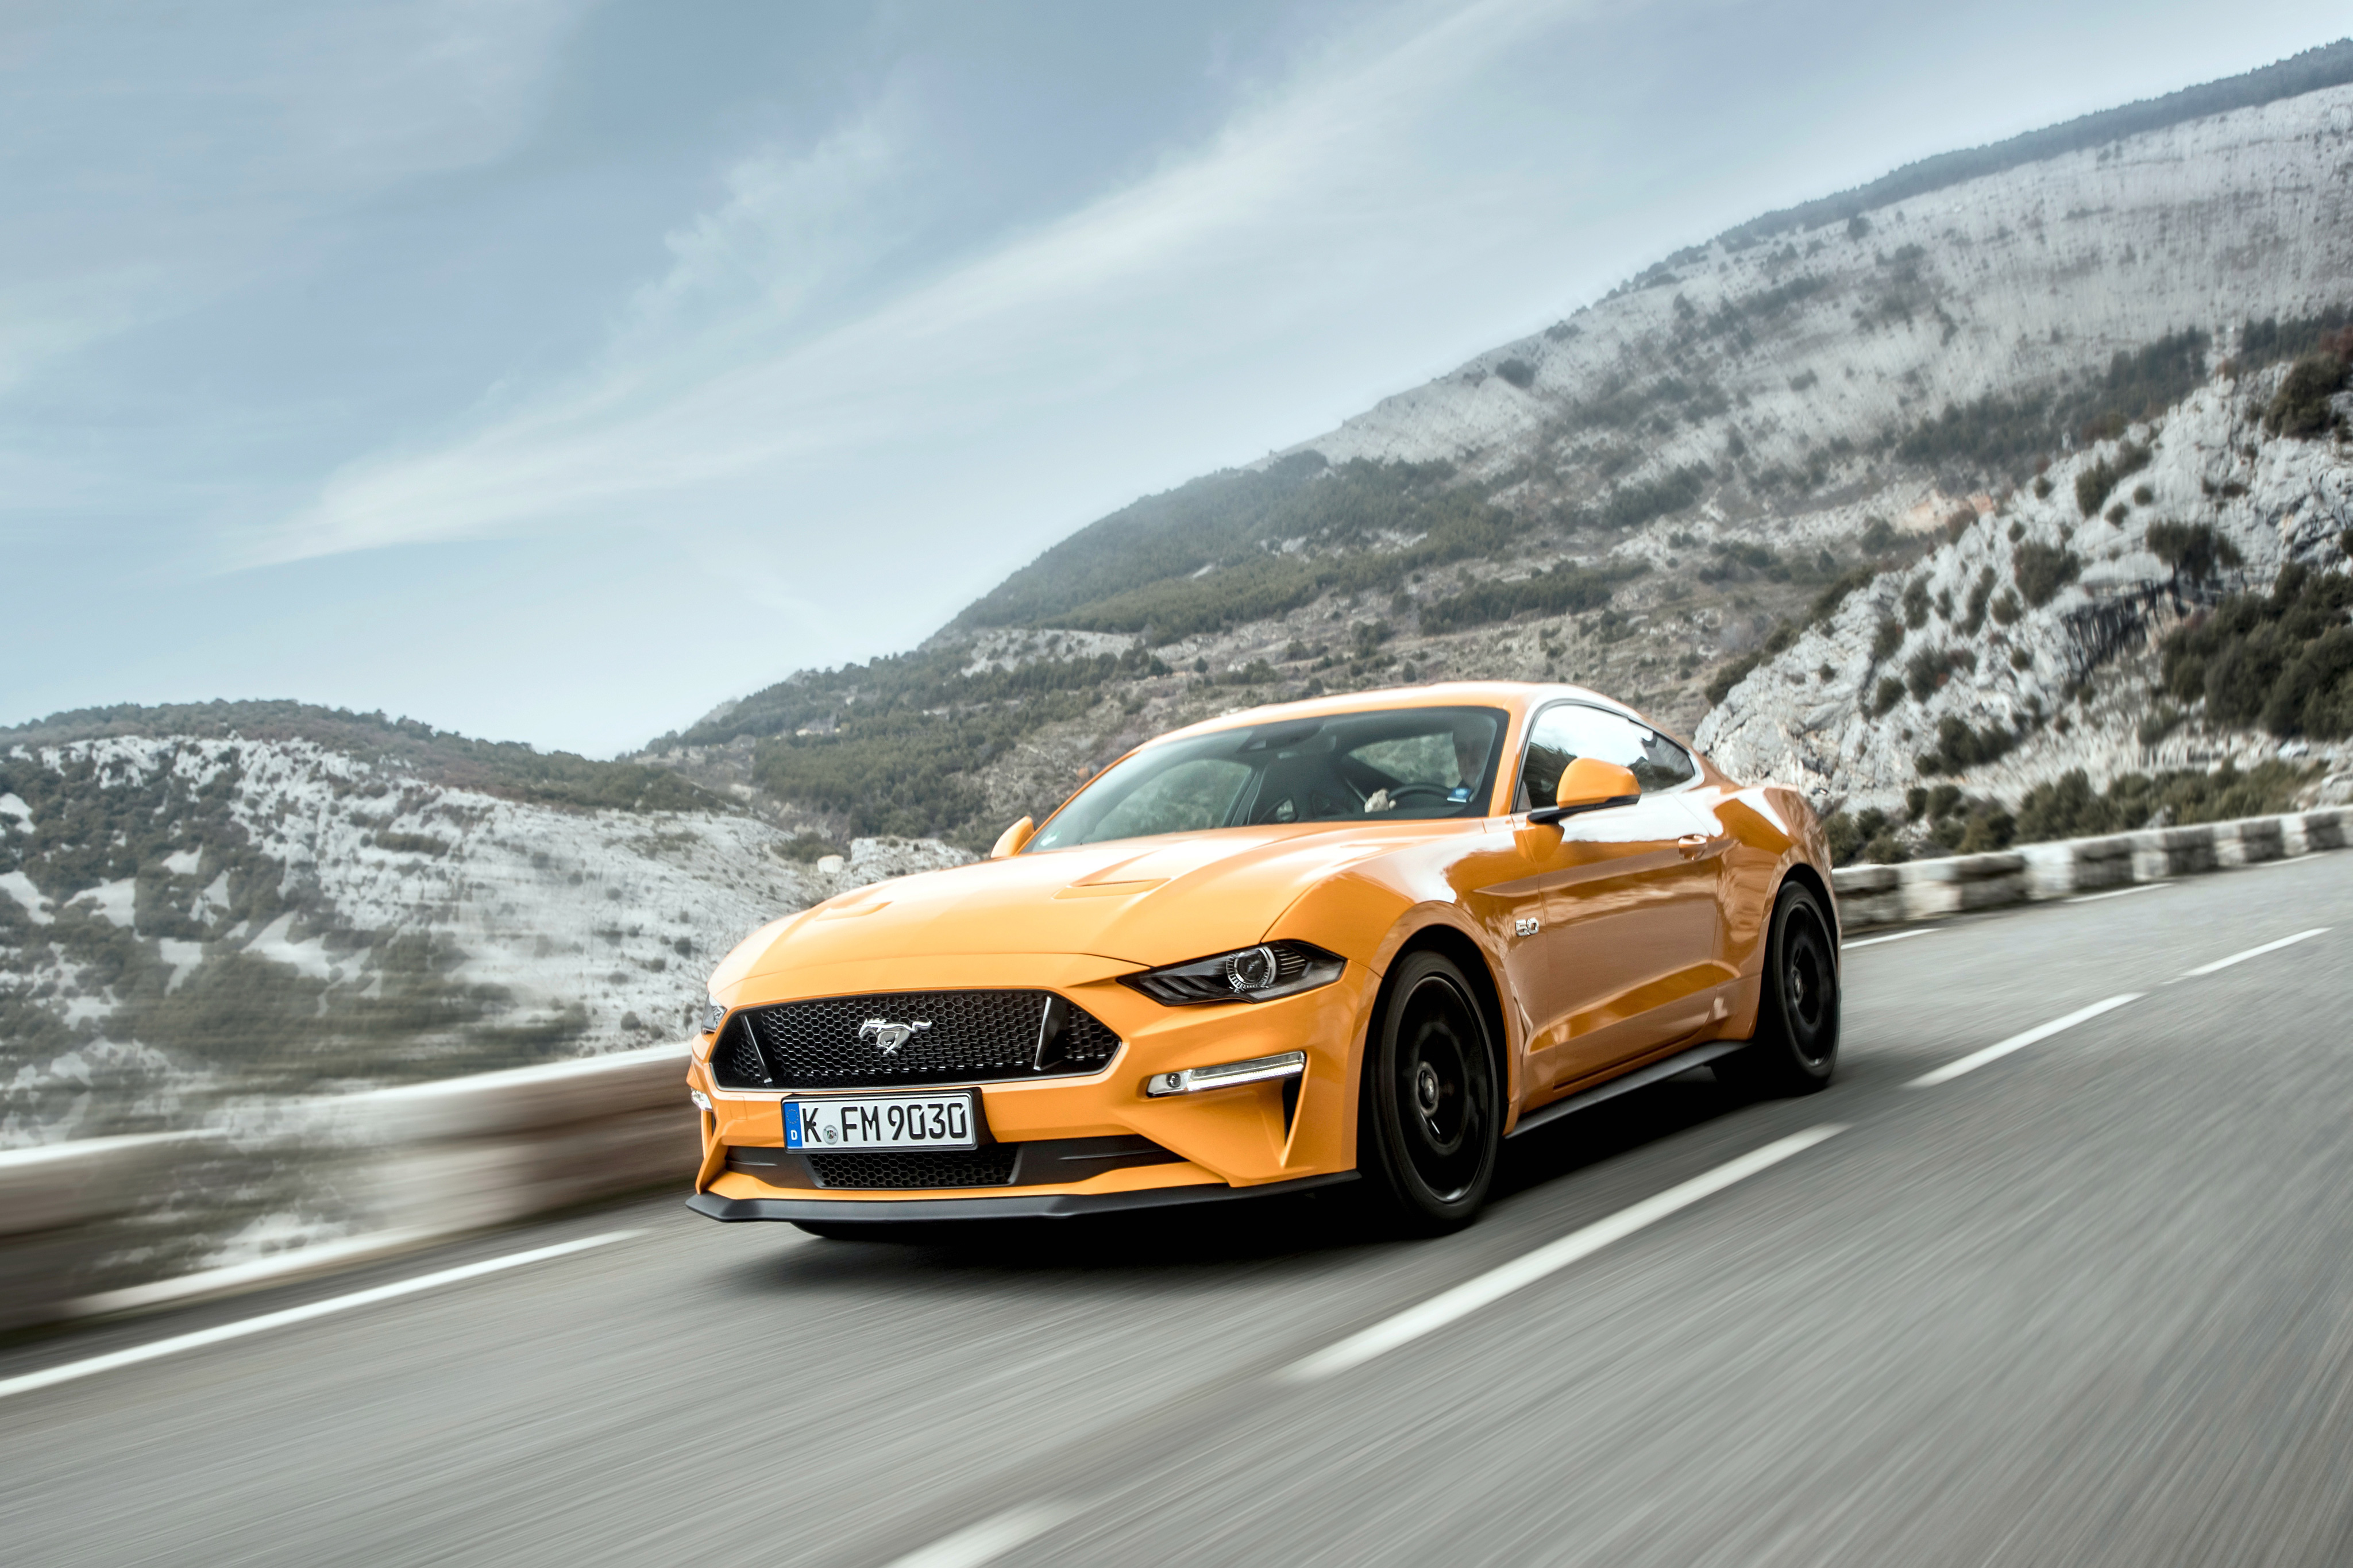 Ford Mustang GT Fastback, HD Cars, 4k Wallpapers, Images ...